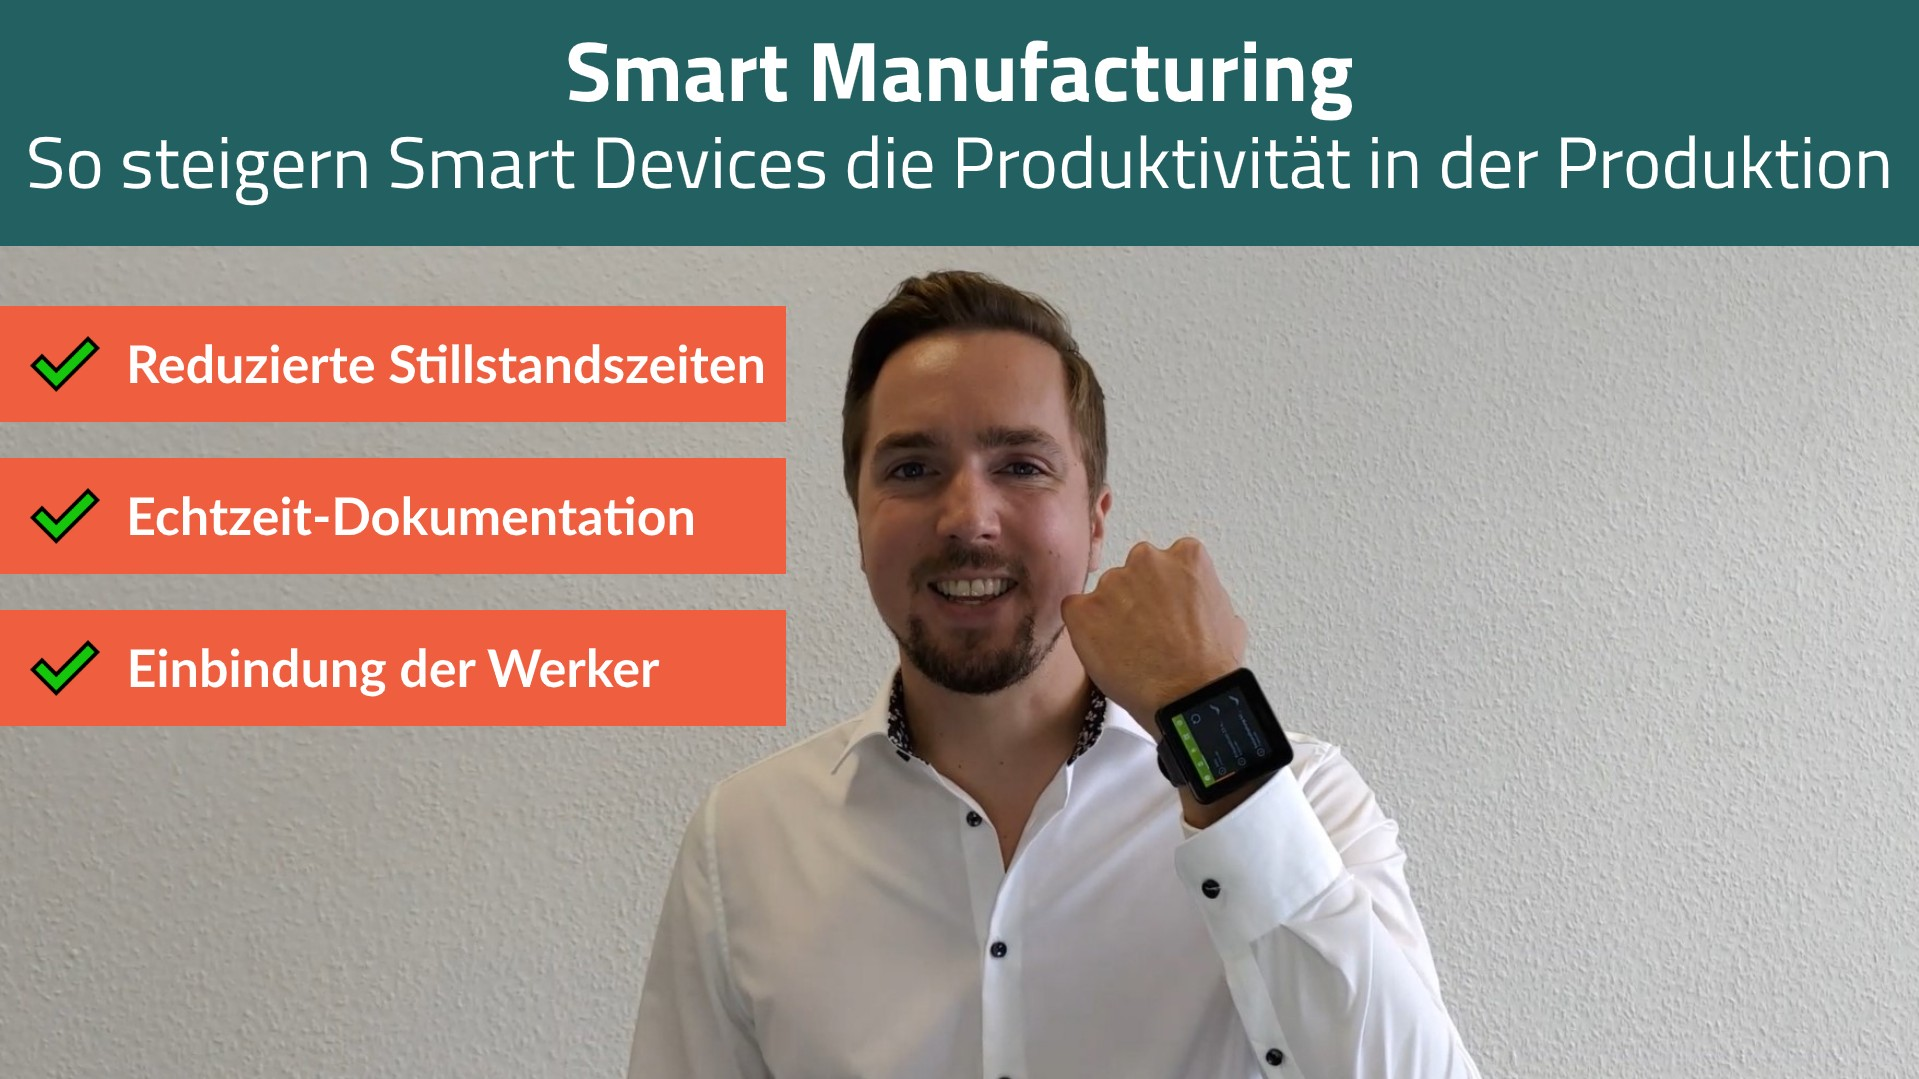 Smart Manufacturing webinar - intro video